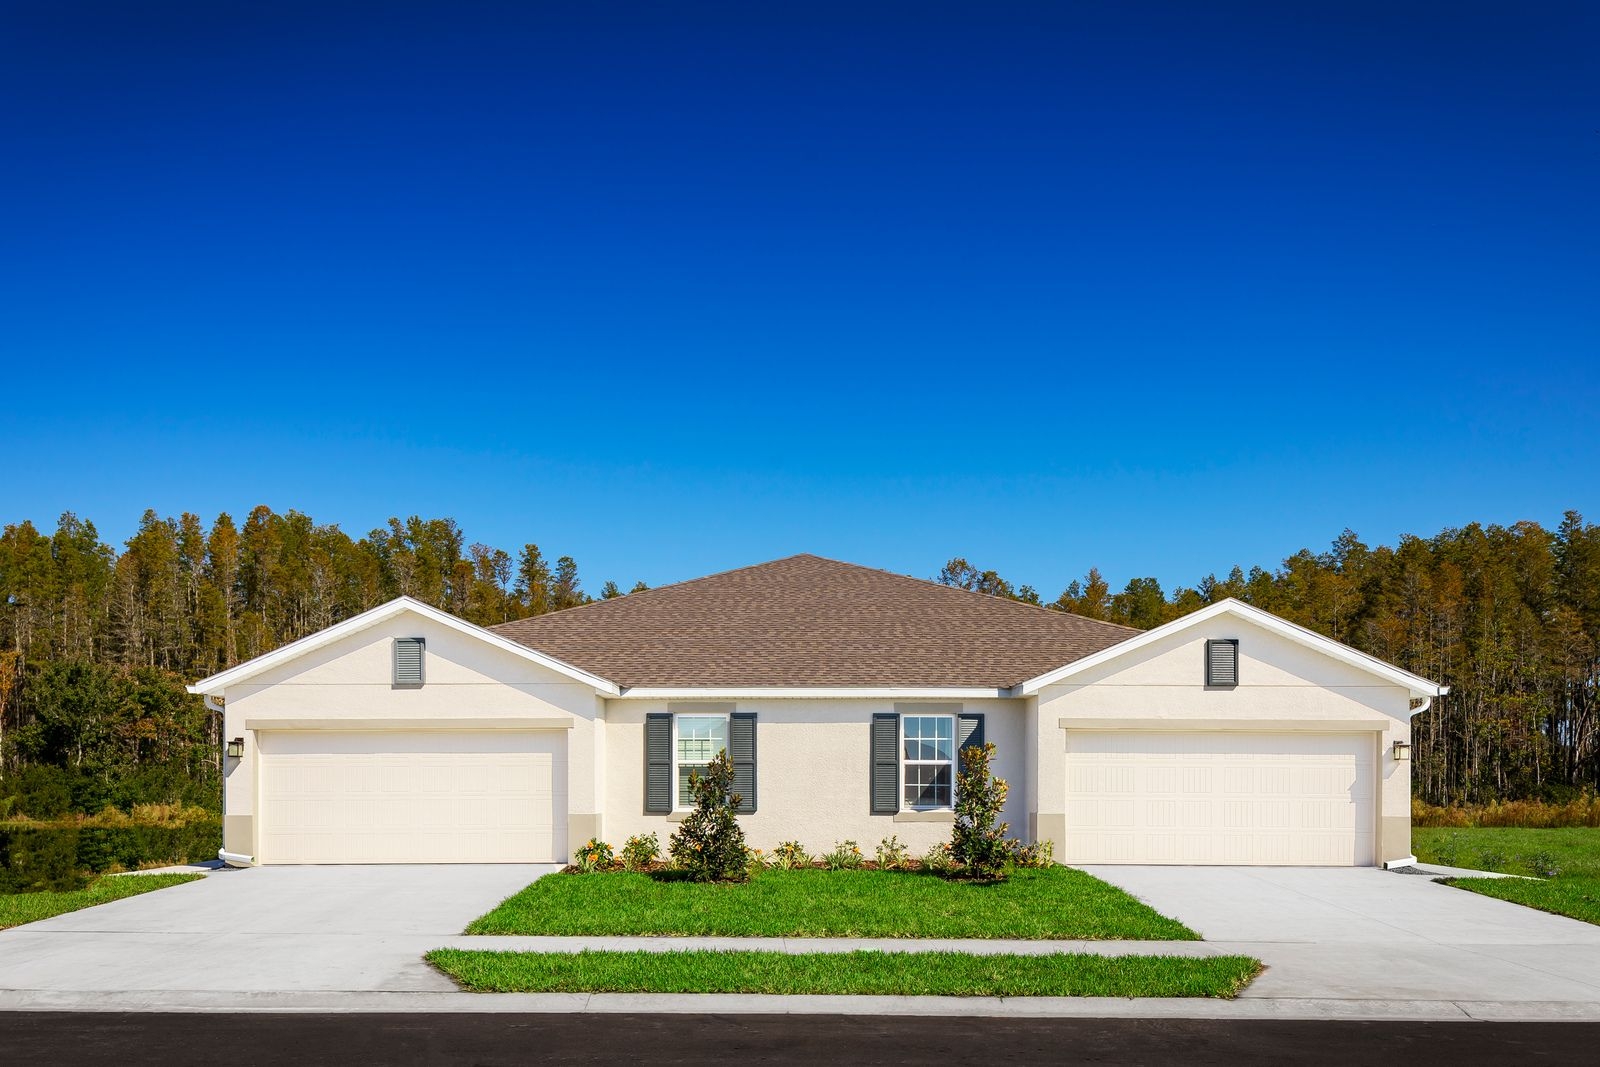 New Villas In Land O Lakes, Florida:Spacious one-story villas with 3 bedrooms, covered lanai and a 2 car garage, offering a low-maintenance lifestyle.